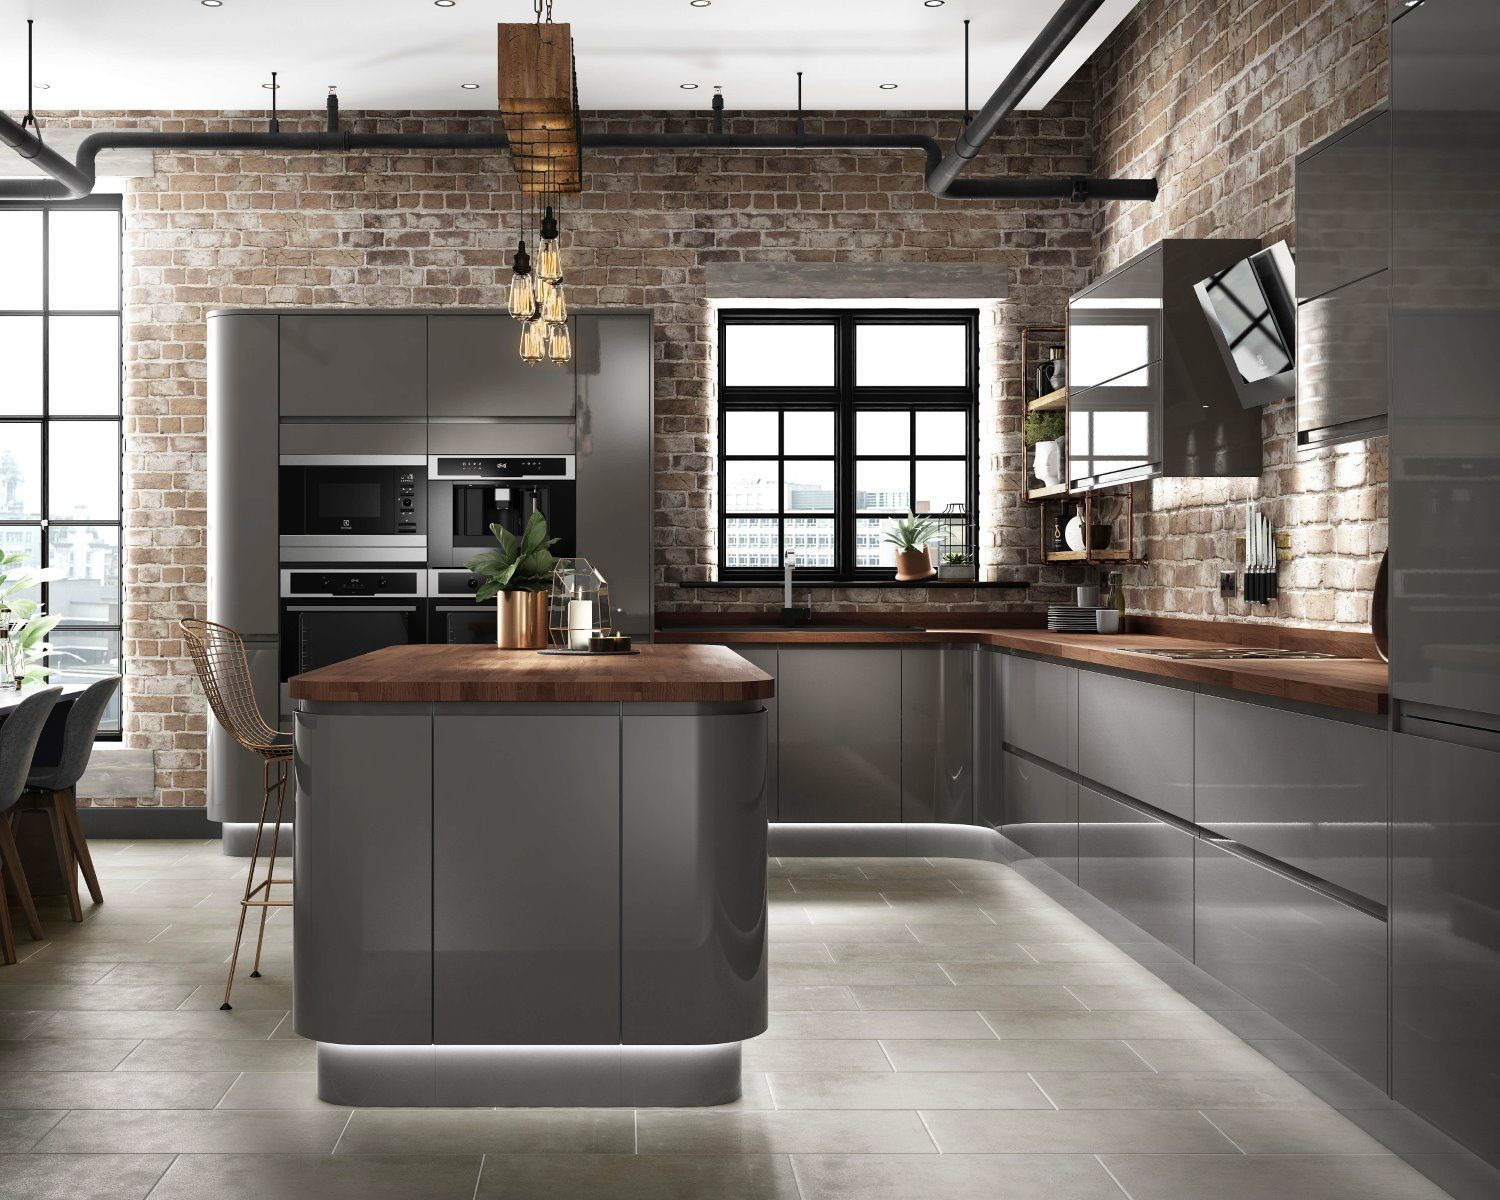 cg grey gloss kitchen industrial design concealed lighting concrete exposed brick industrial on kitchen ideas gray id=68865